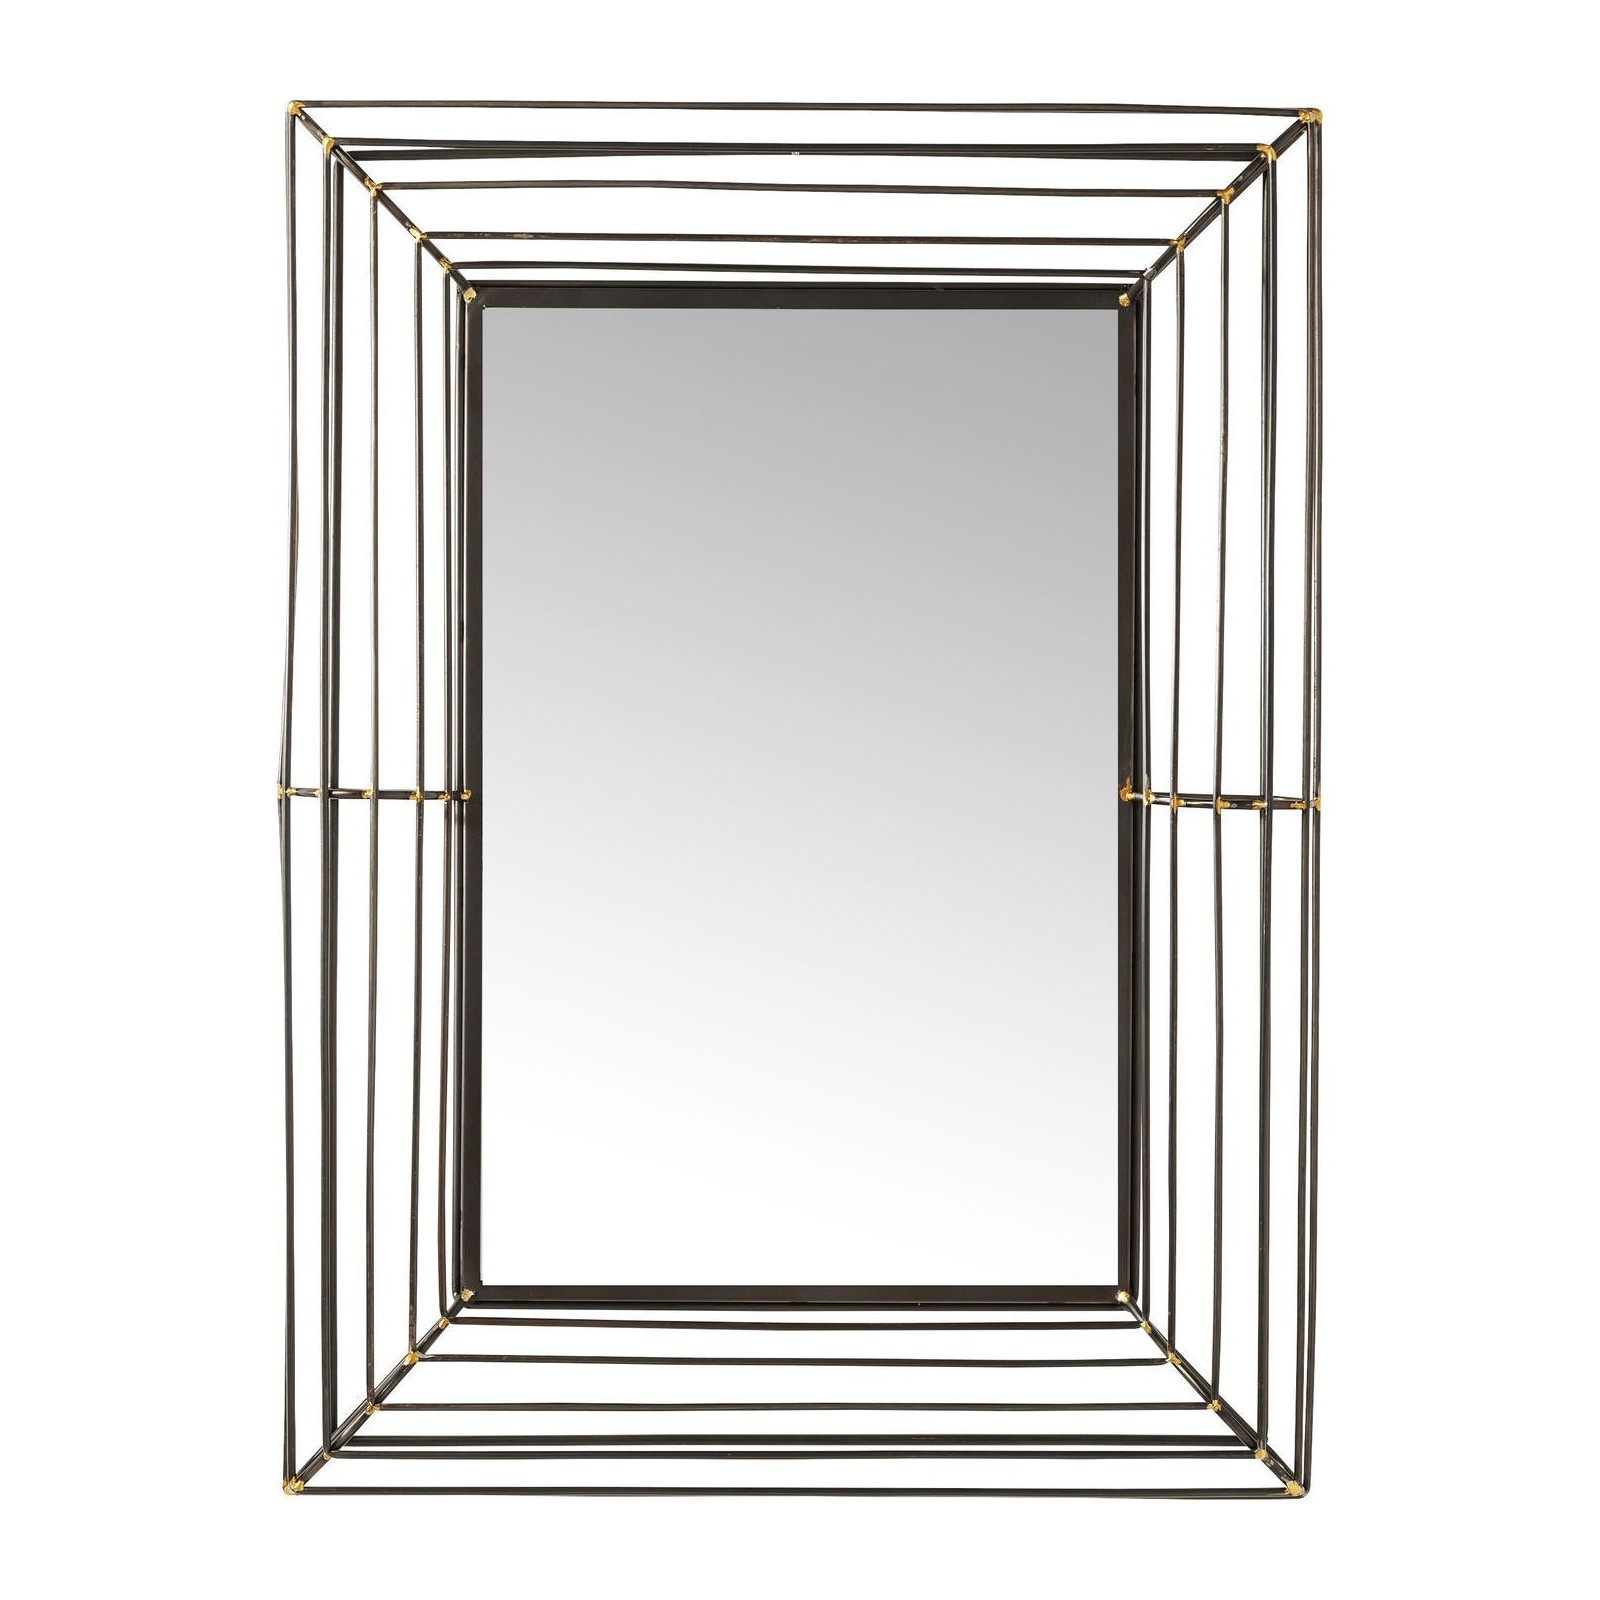 Miroir hacienda rectangulaire 95x71cm kare design for Miroir design solde